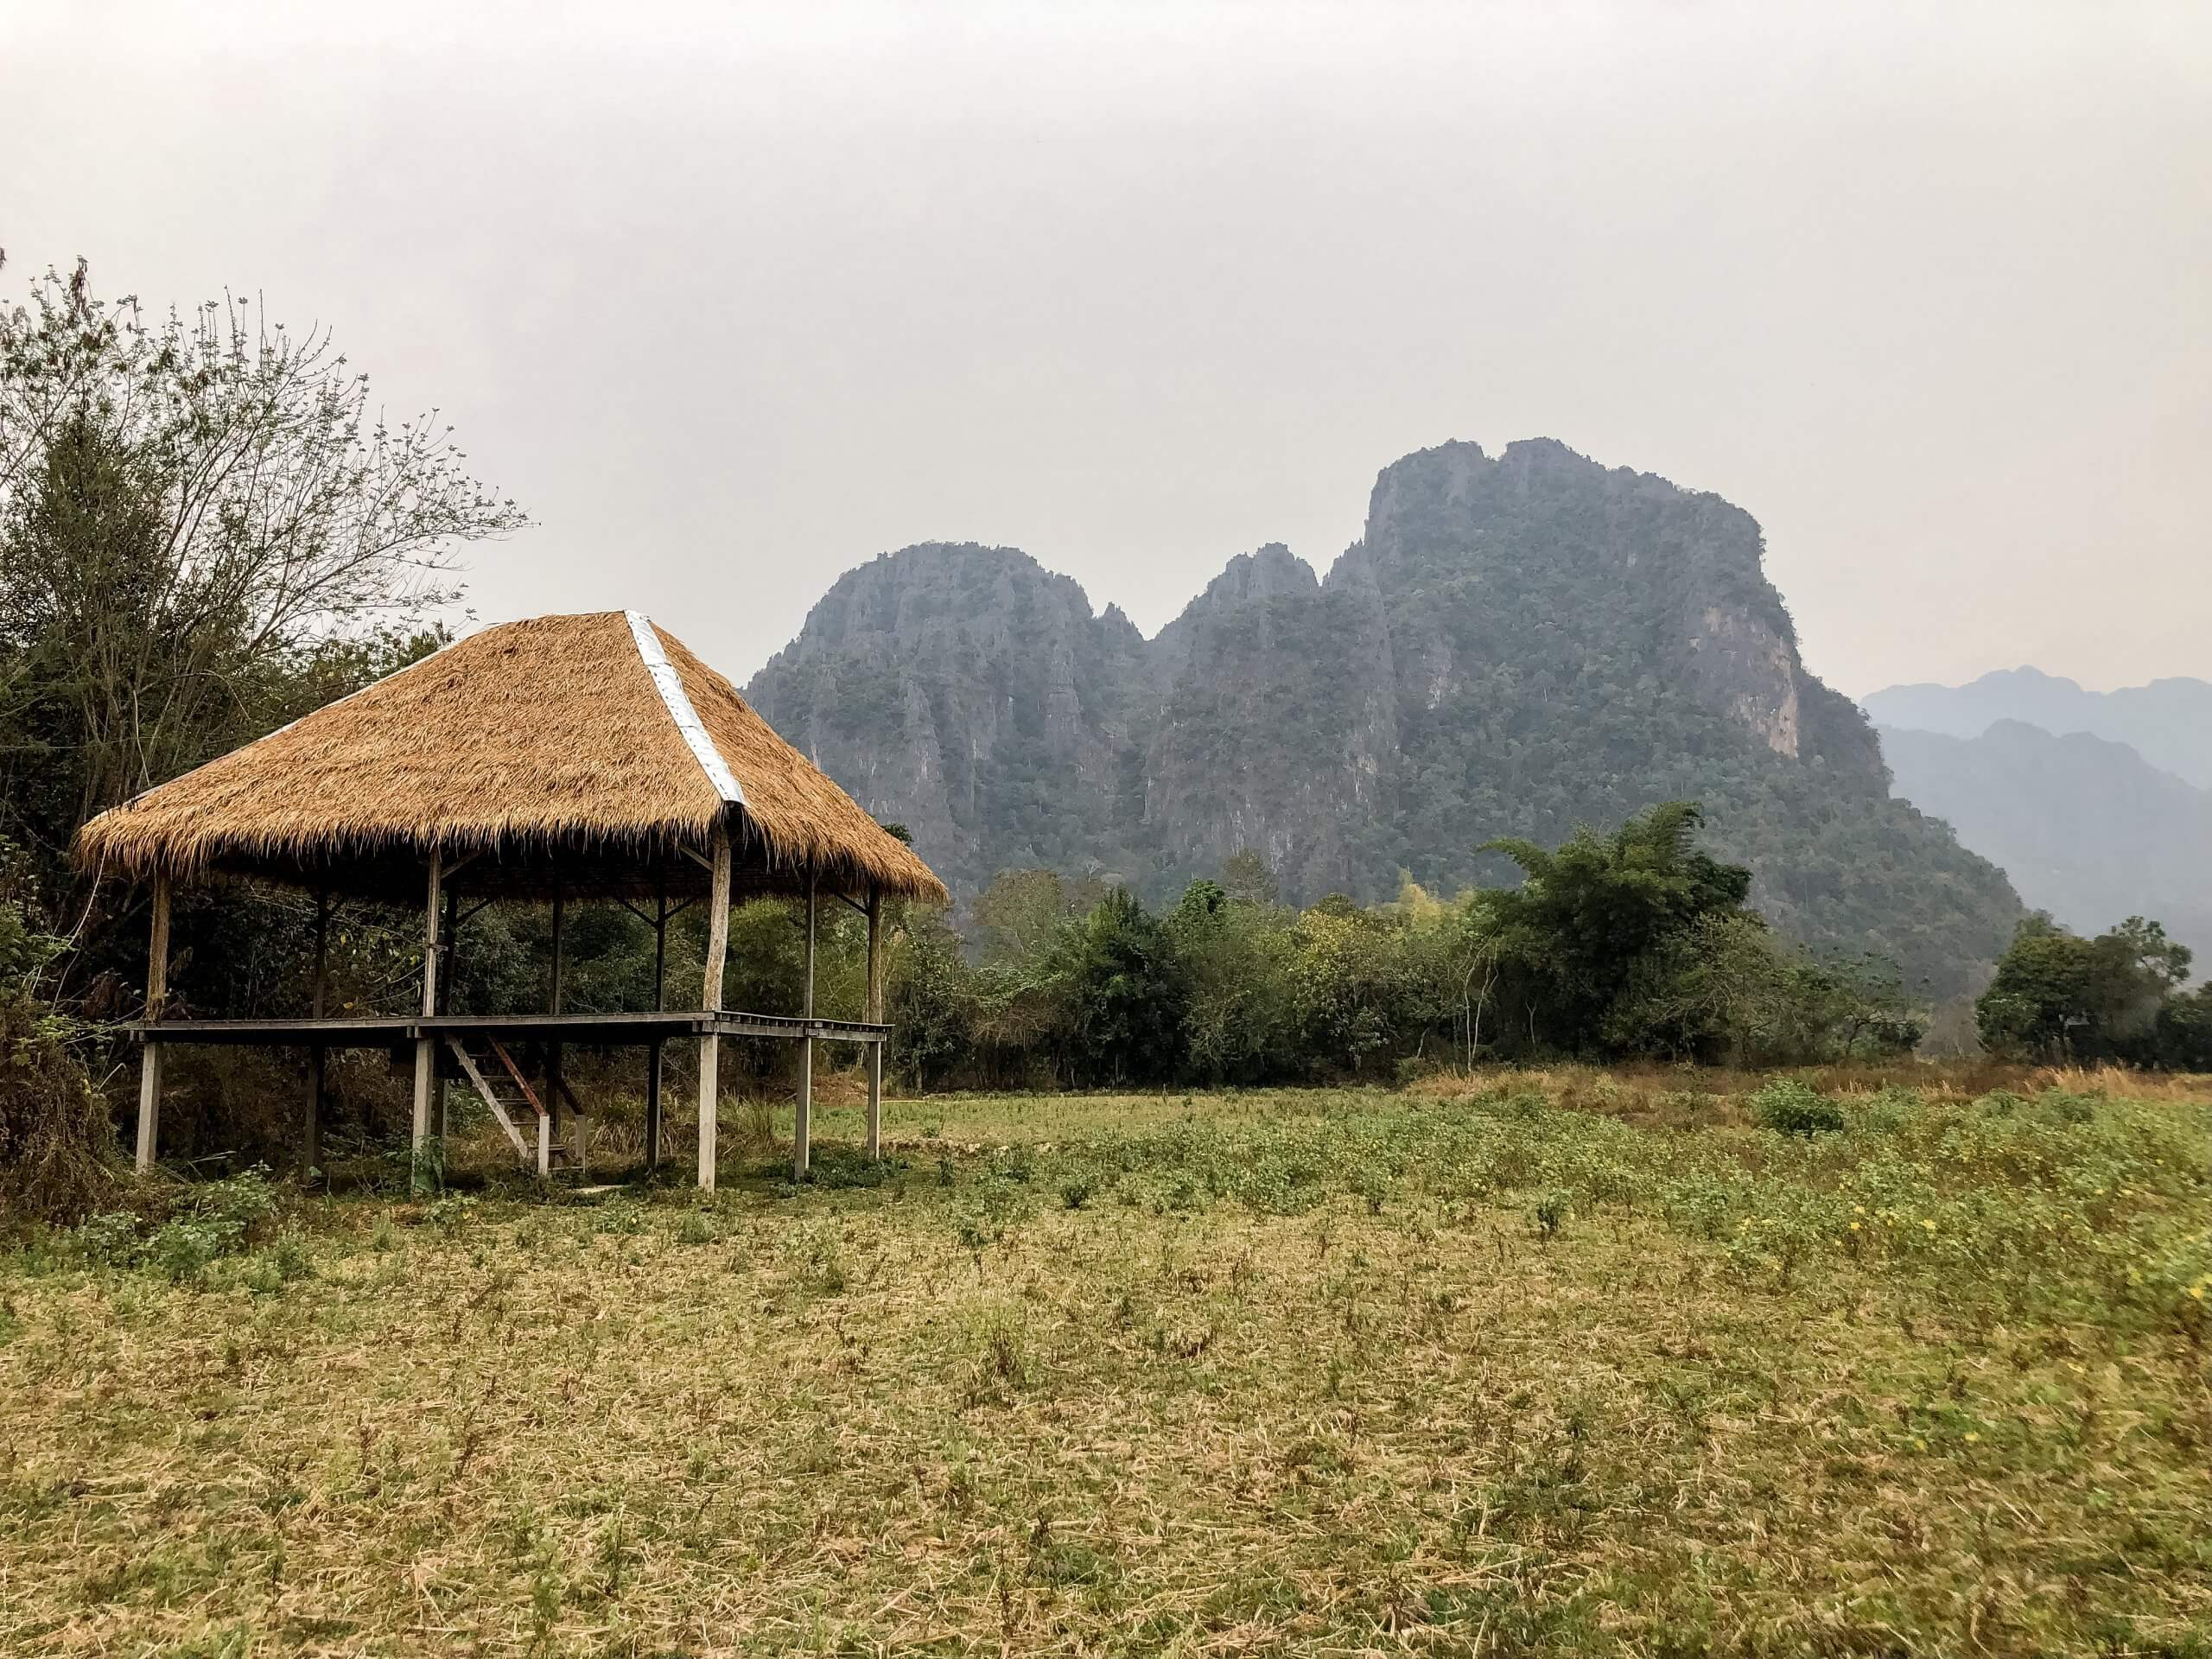 The outdoor yoga chalet in Vang Vieng, Laos